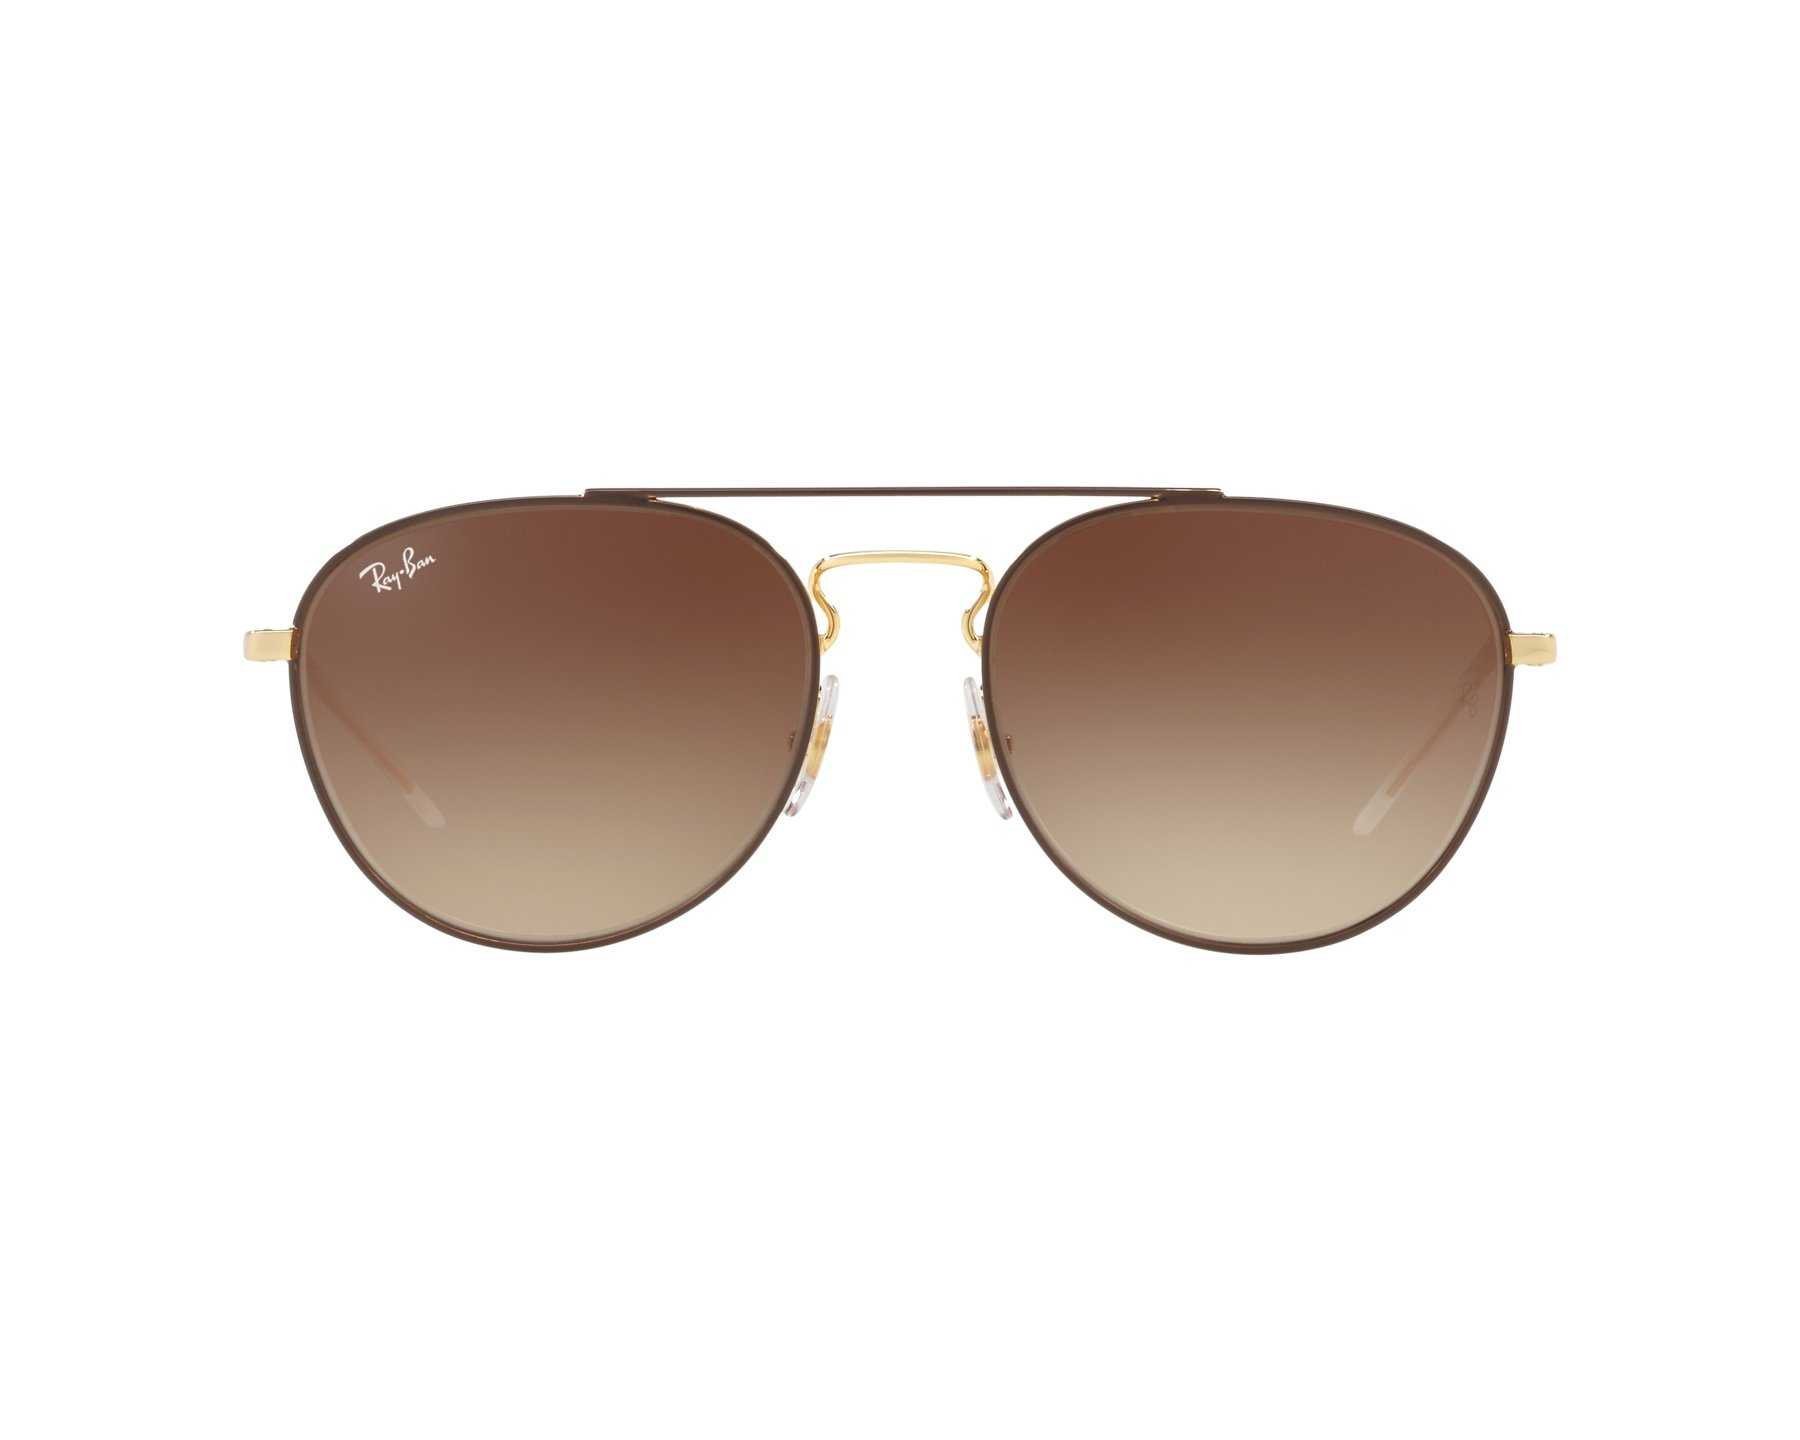 15105d6e209 Sunglasses Ray-Ban RB-3589 905513 55-18 Brown Gold 360 degree view